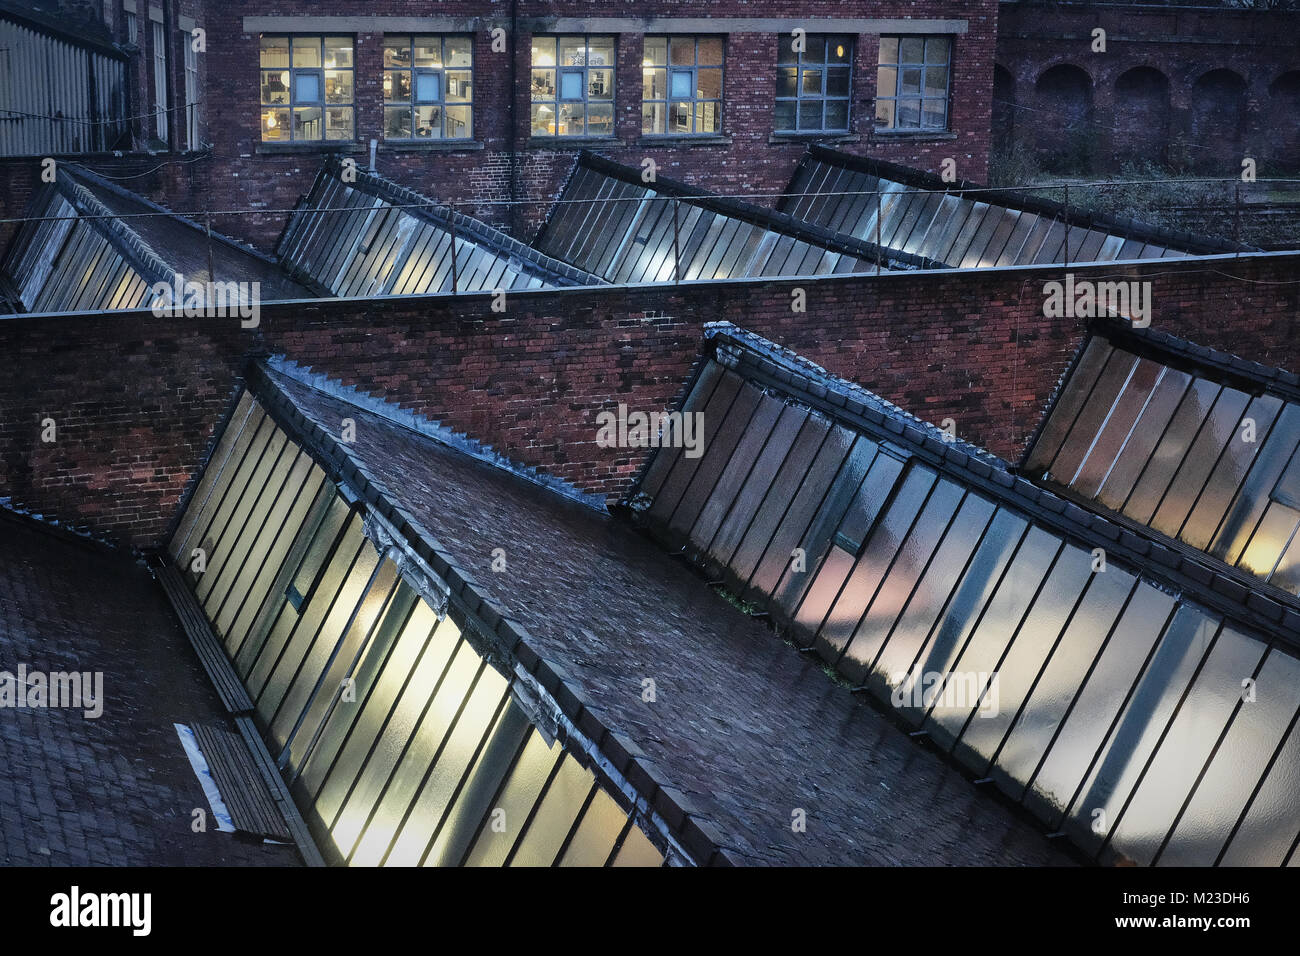 Dusk over a wet roofline of a factory in northern England. Roof tiles, brick and window glass are seen with light - Stock Image